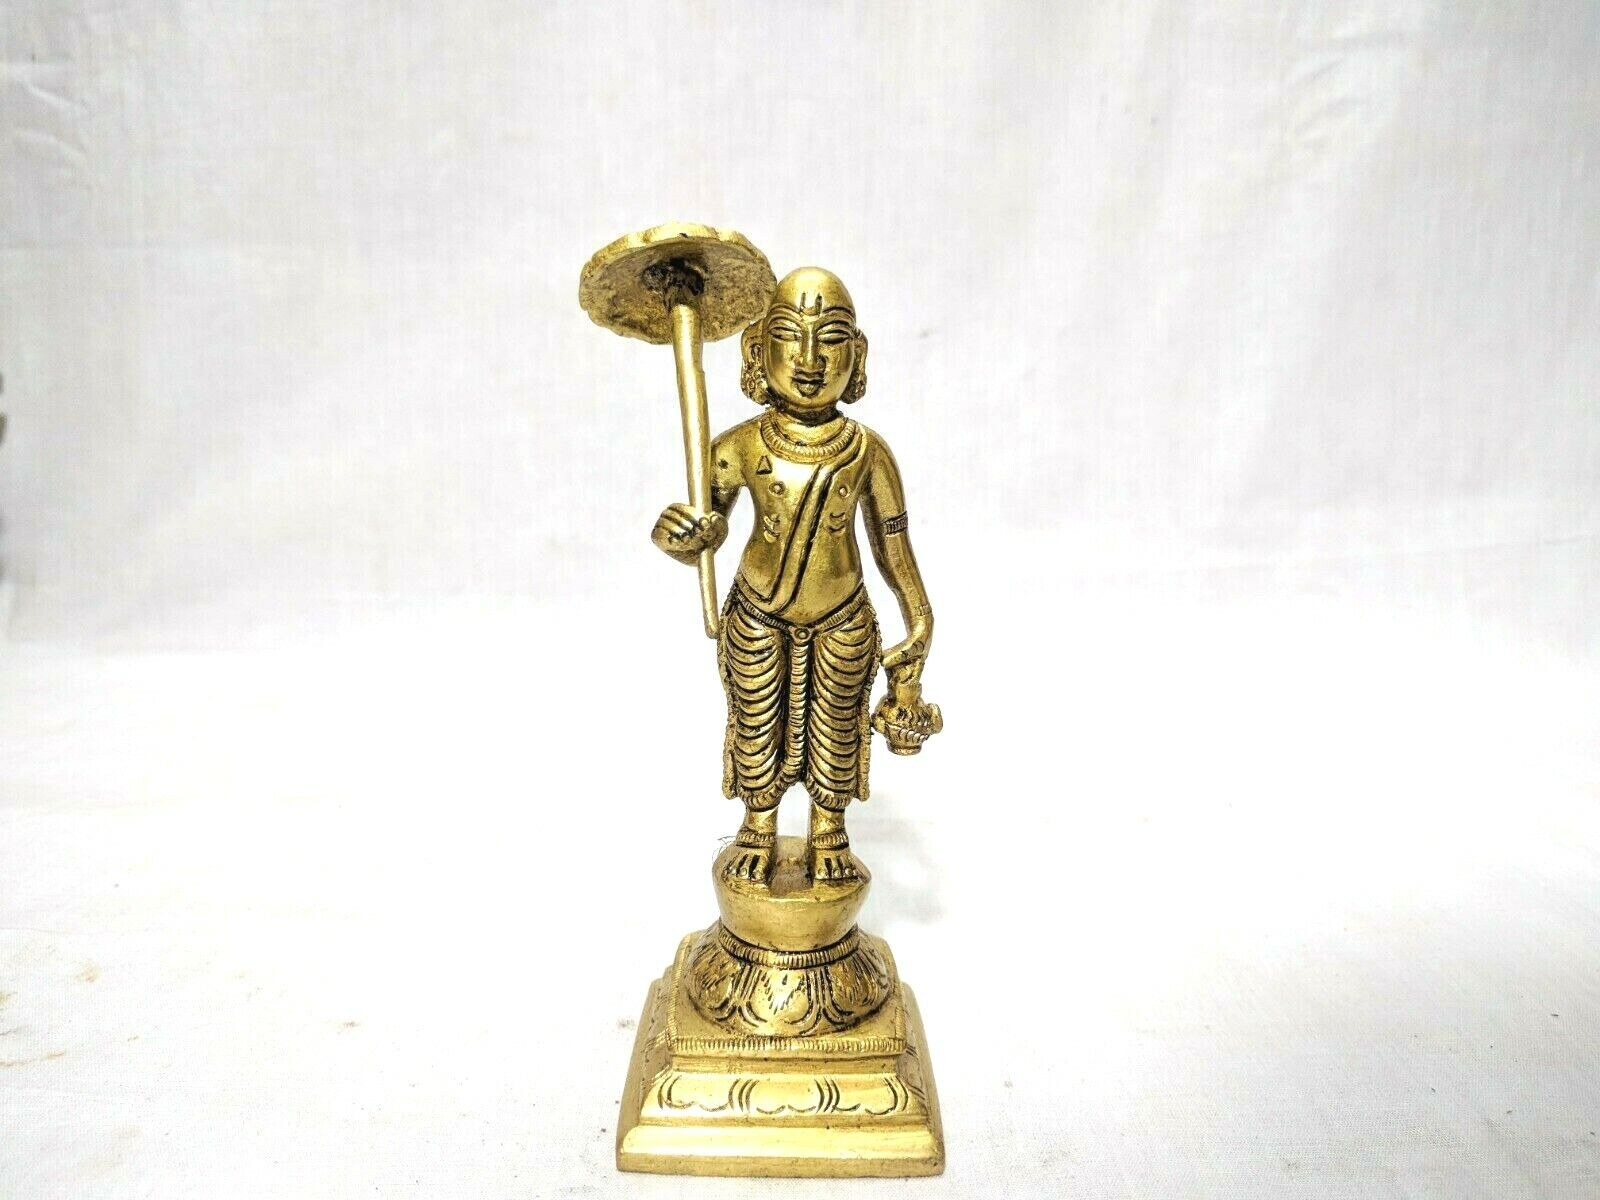 Dashavatar Brass Statue Vishnu Ten Avatar God Pooja Figurine Temple Art Decor Без бренда - фотография #5